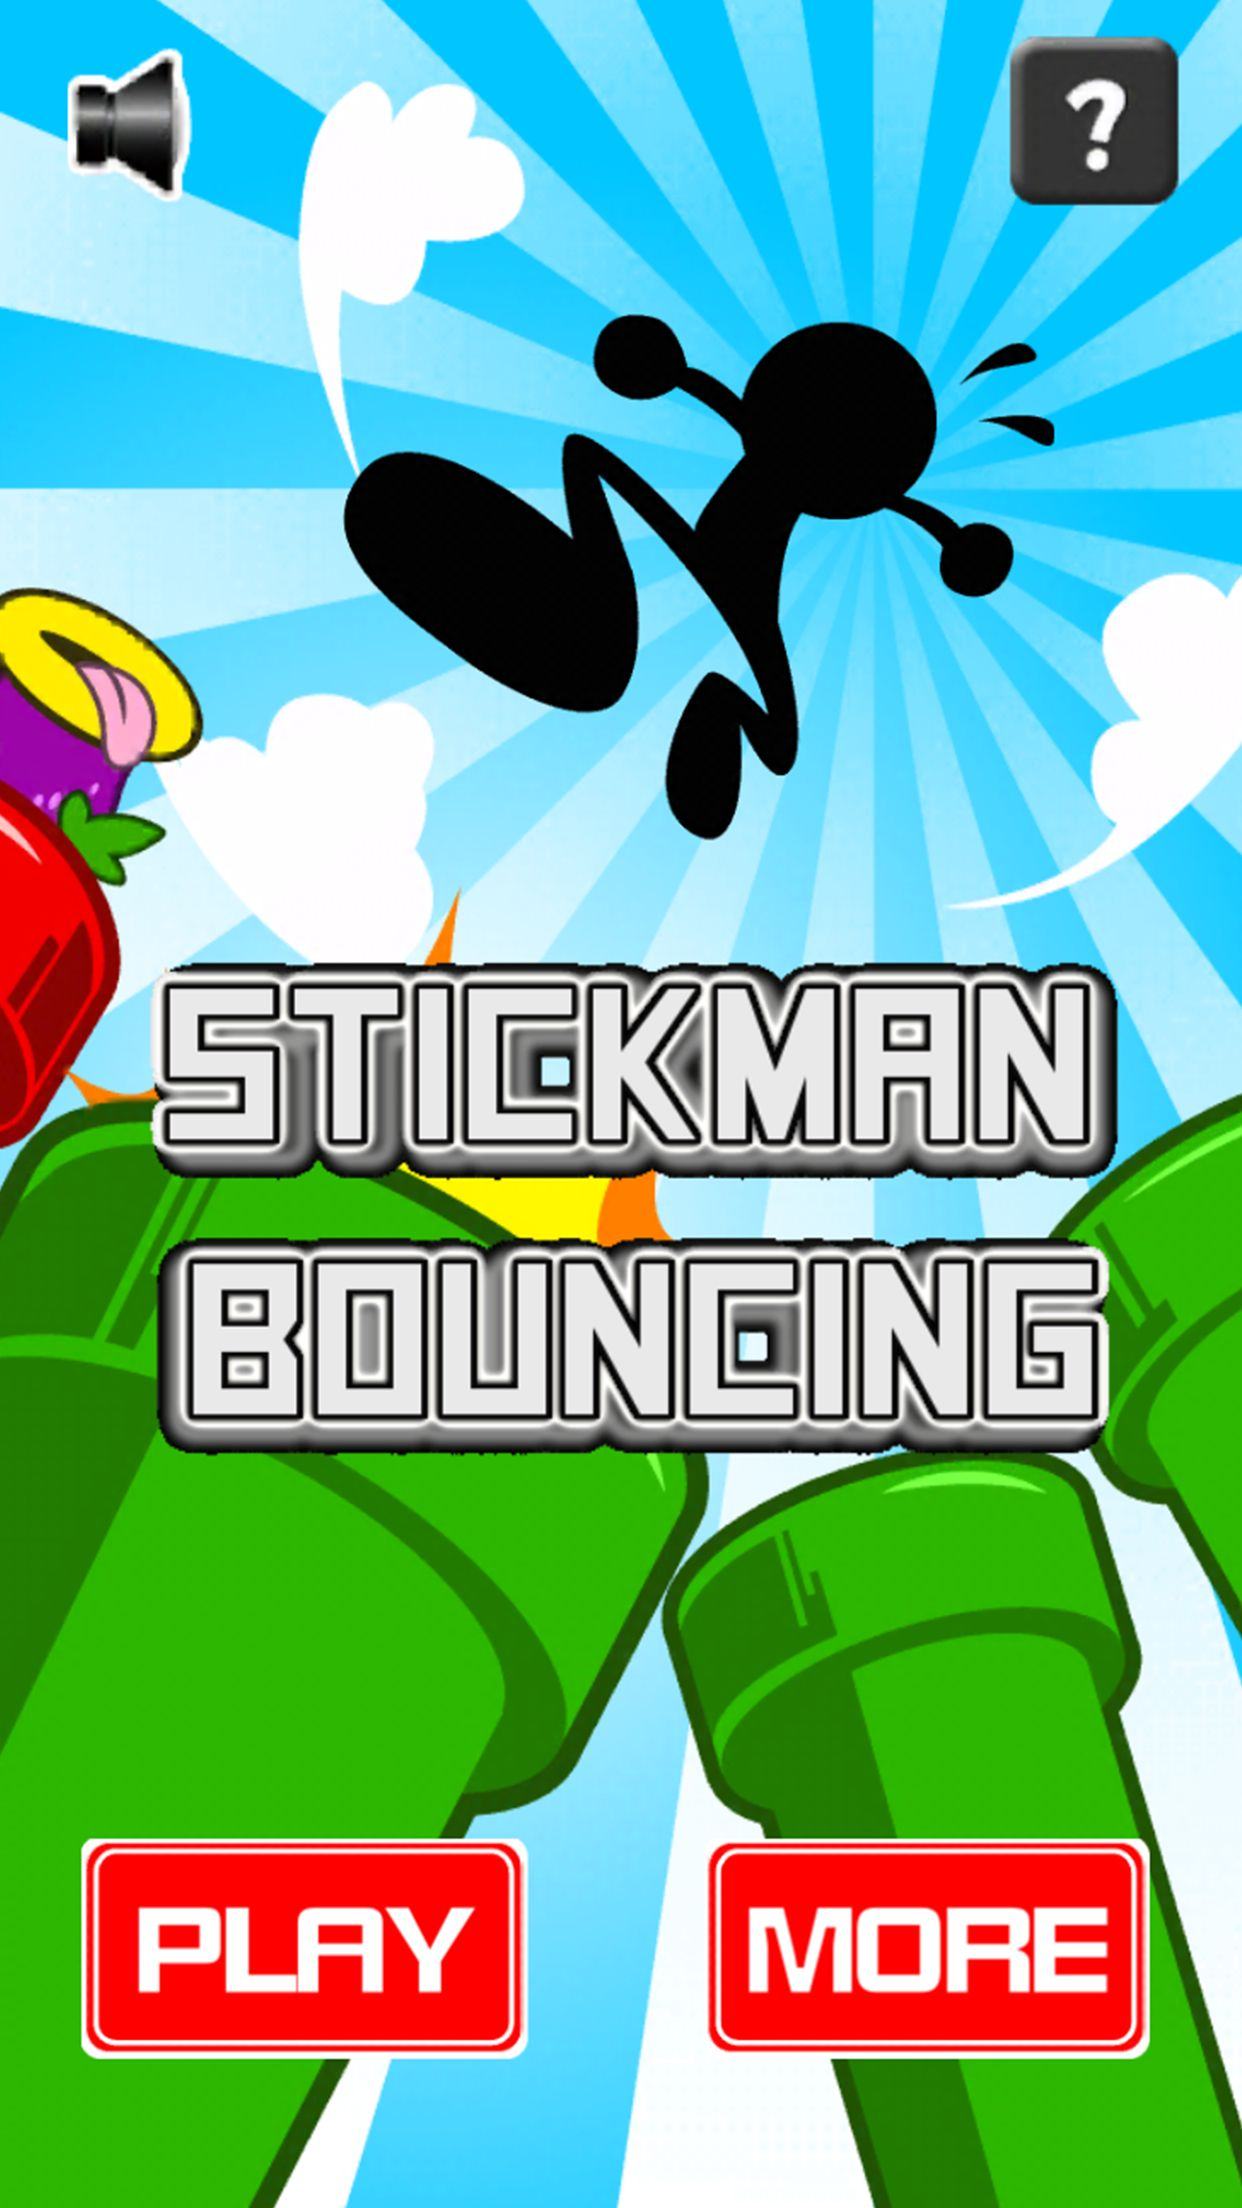 Stickman Bouncing - Complete Unity Project Screenshot 1